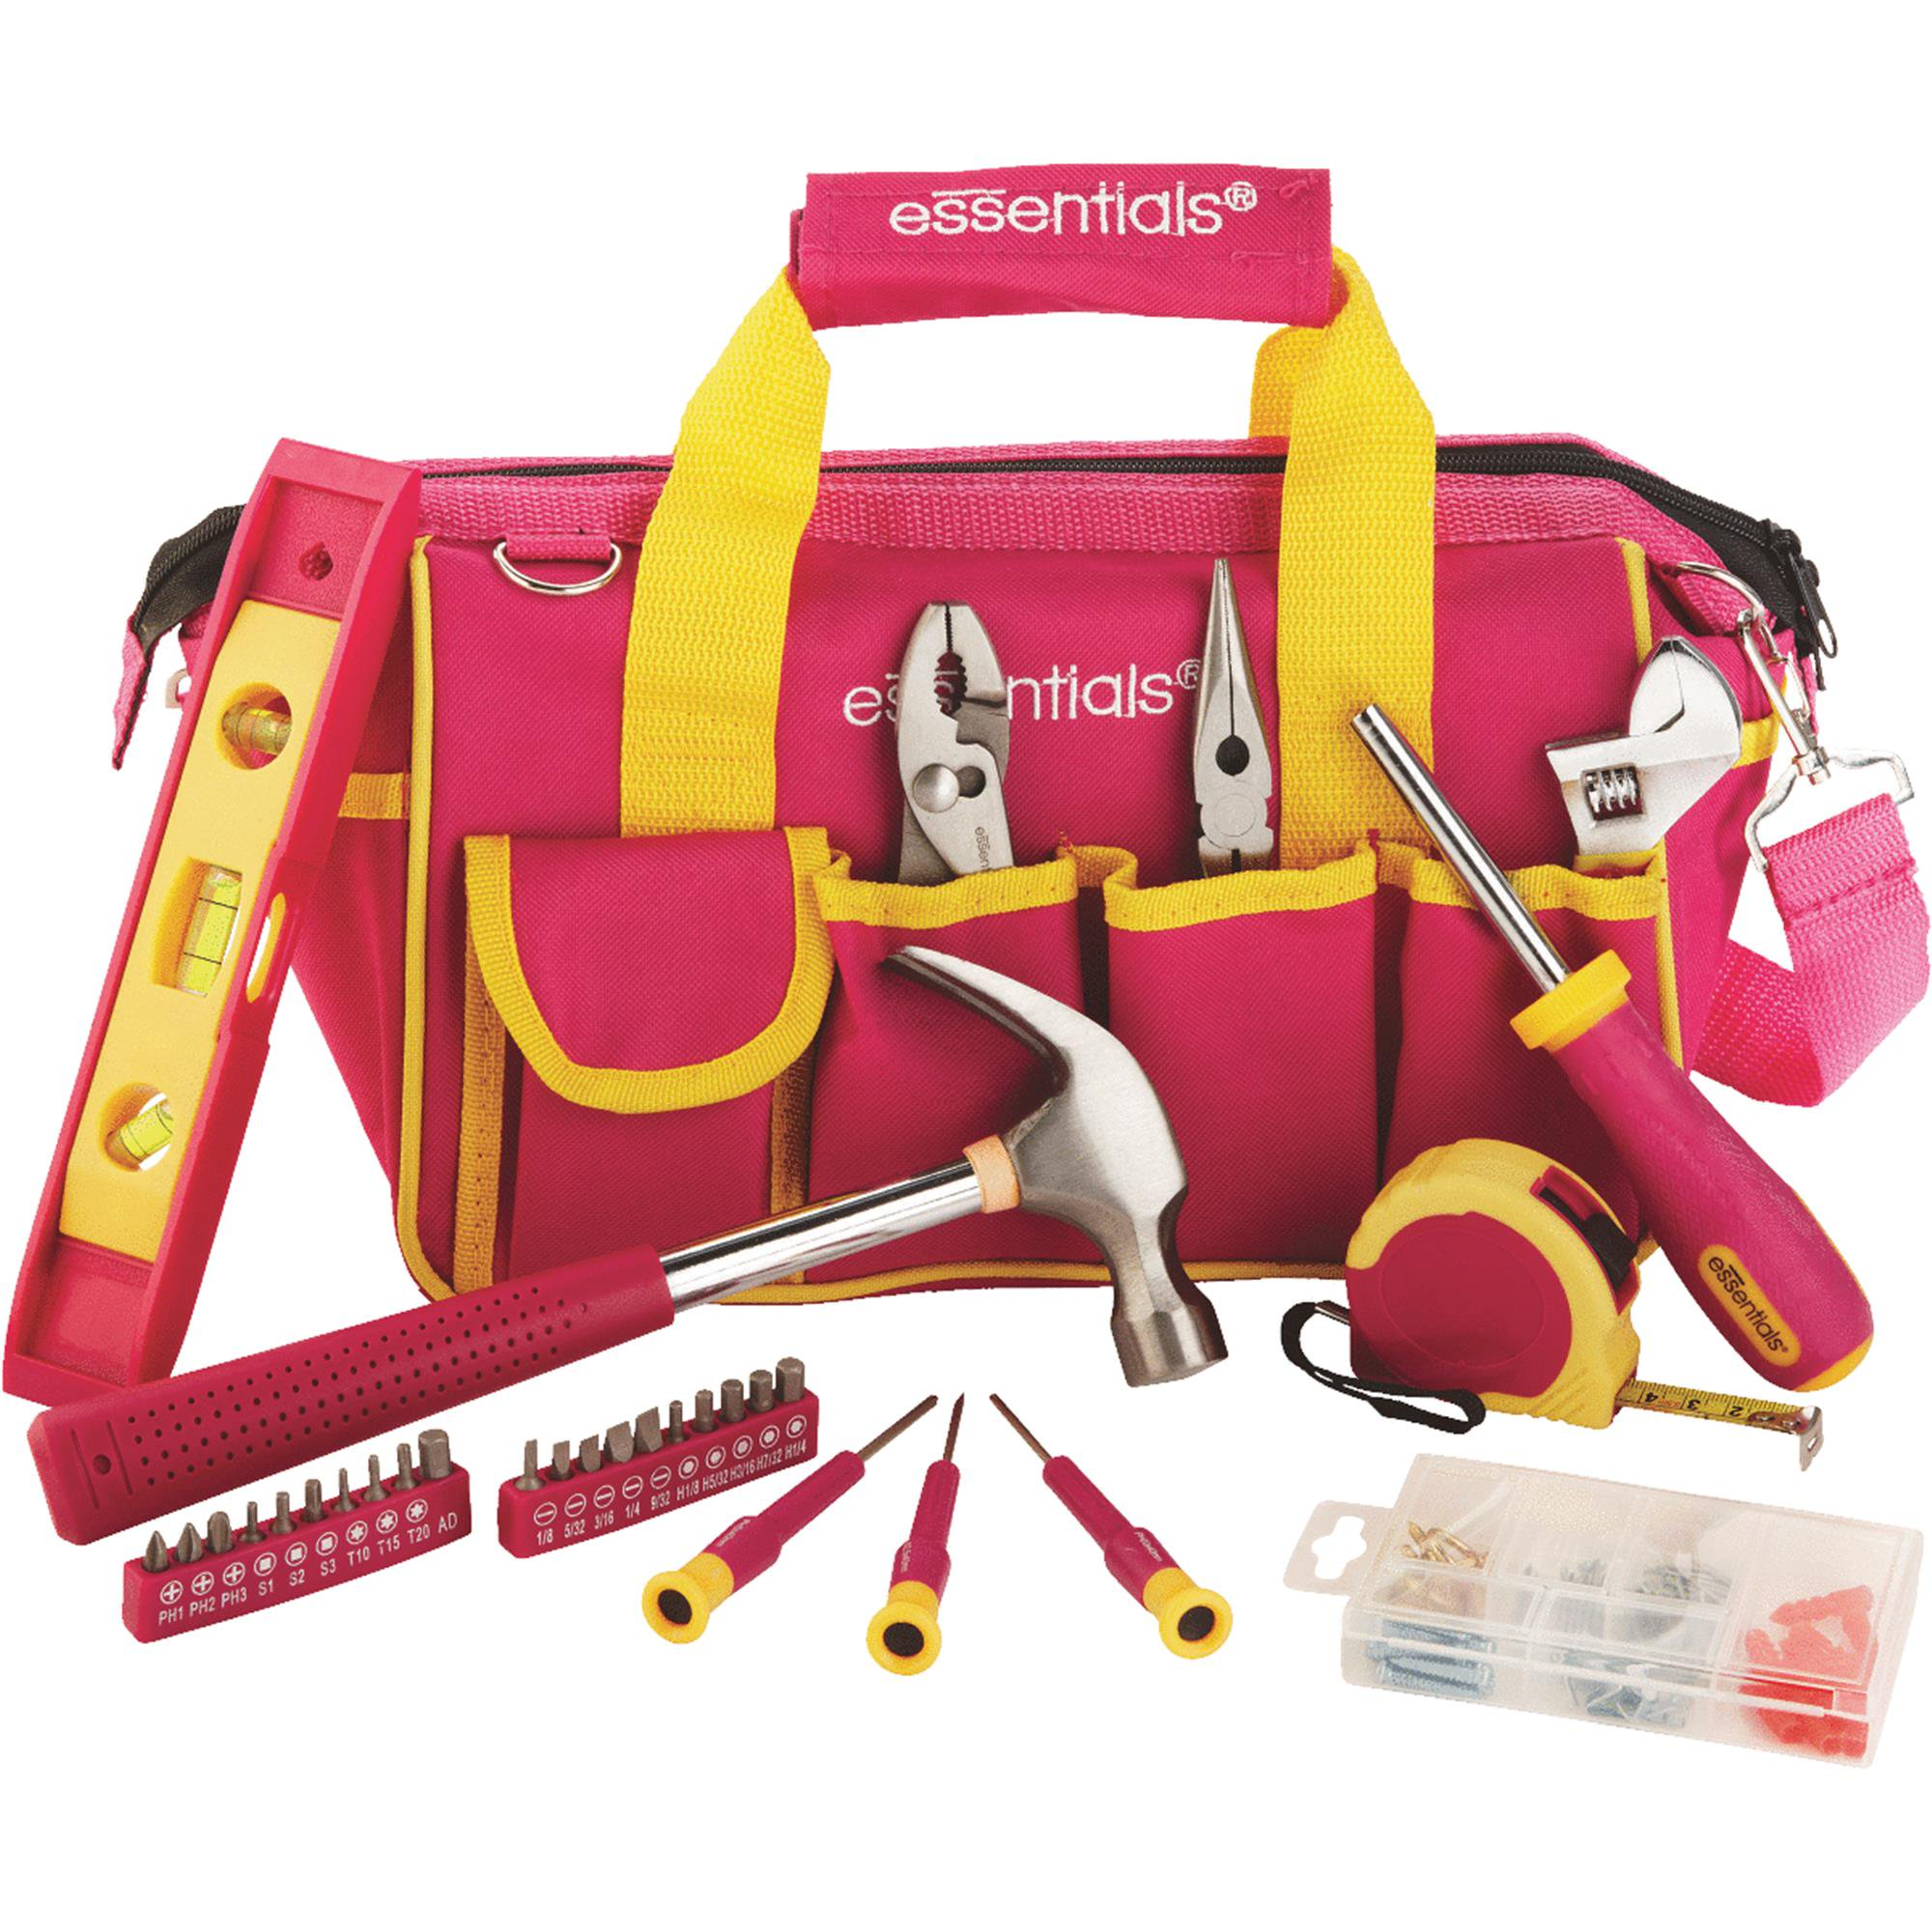 Essentials 32-Piece Tool Set, Pink